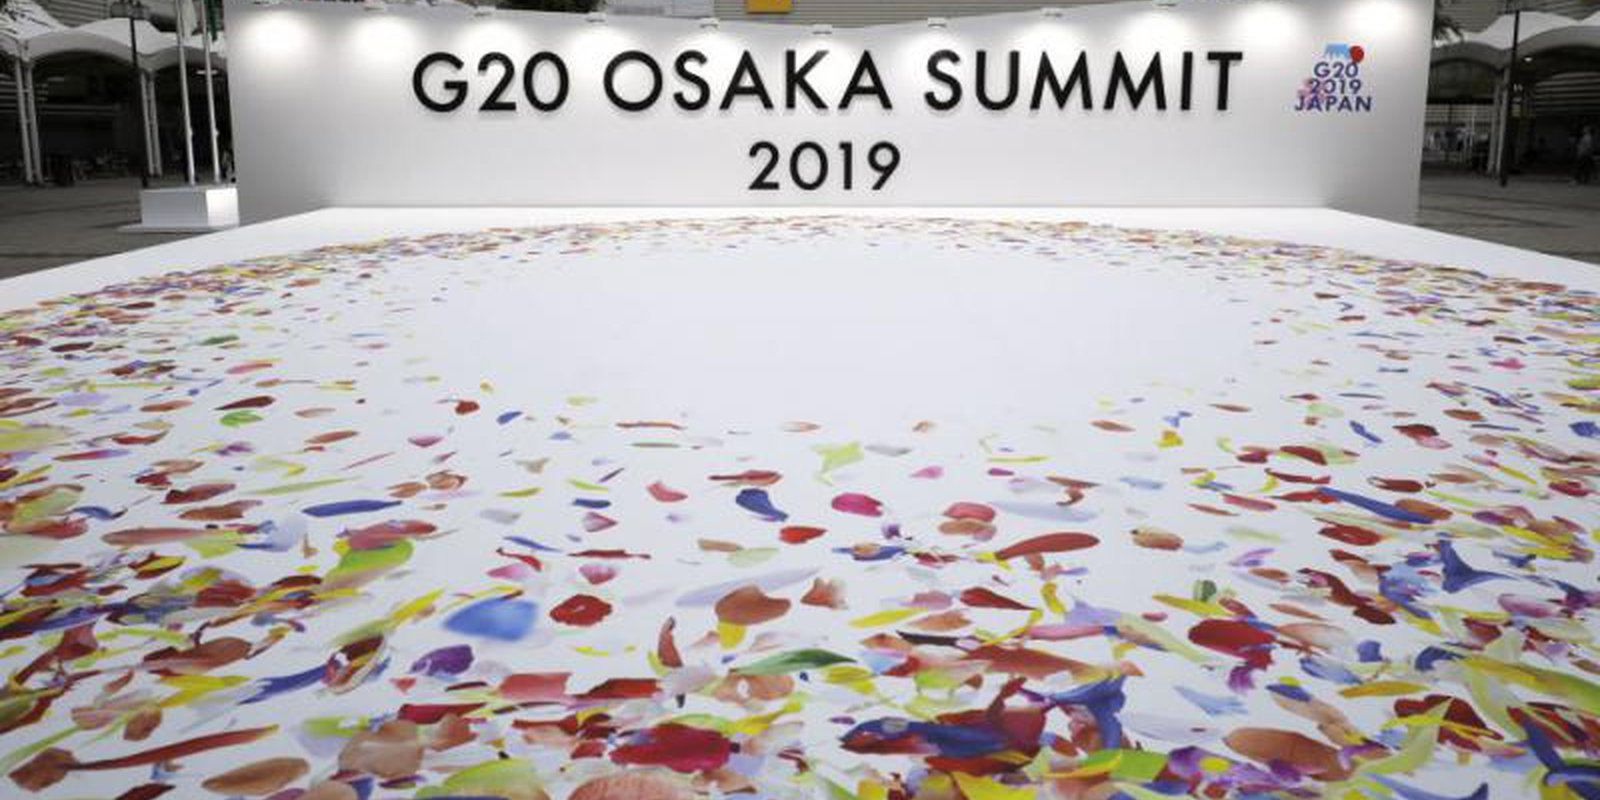 Signage for 2019 G20 summit in Osaka, Japan. Photo: Kiyoshi Ota/Bloomberg via Getty Images.